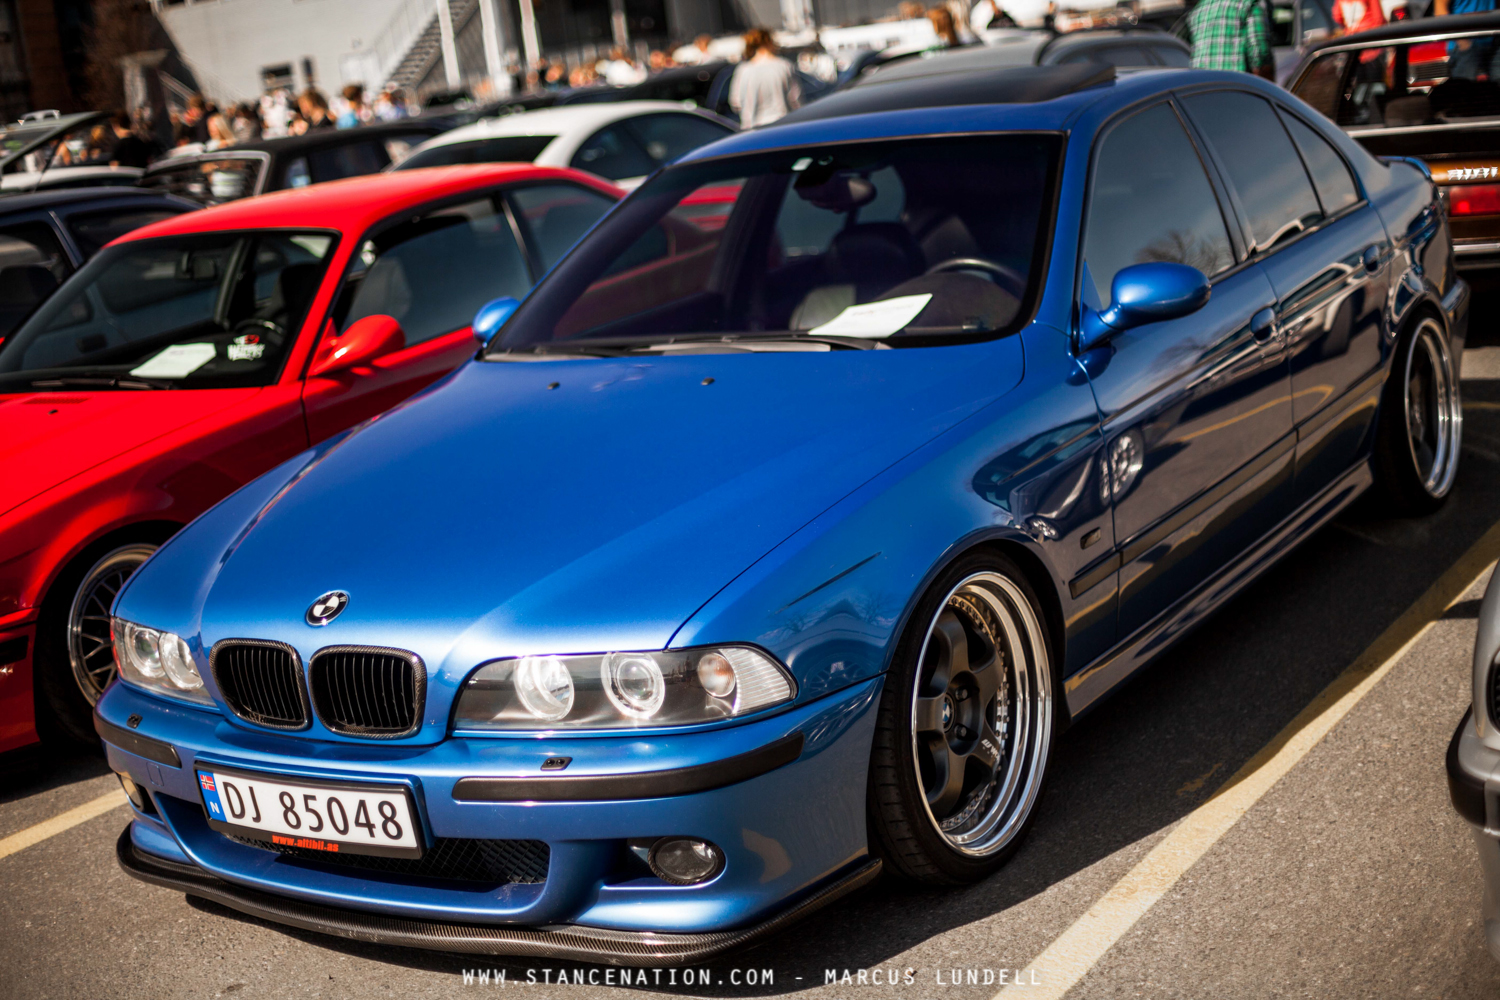 early-fitment-photos-103.jpg